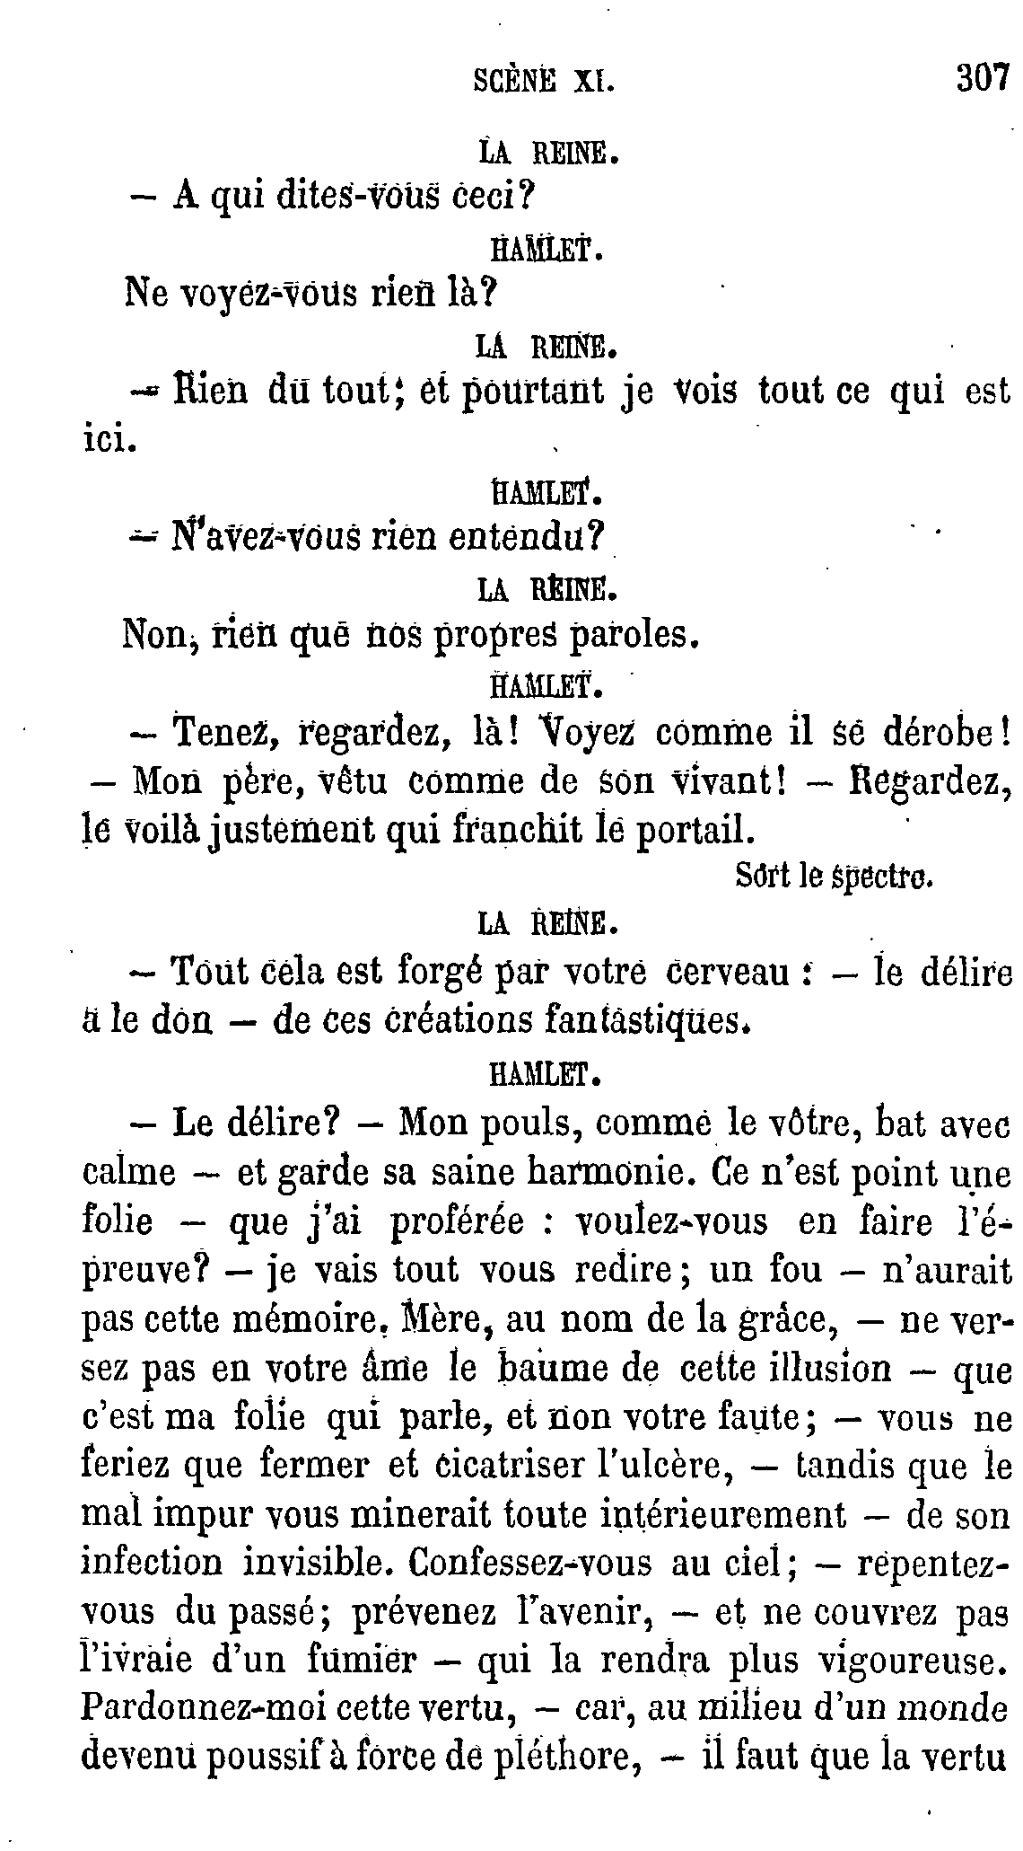 page shakespeare uvres compl tes traduction hugo pagnerre 1865 tome wikisource. Black Bedroom Furniture Sets. Home Design Ideas